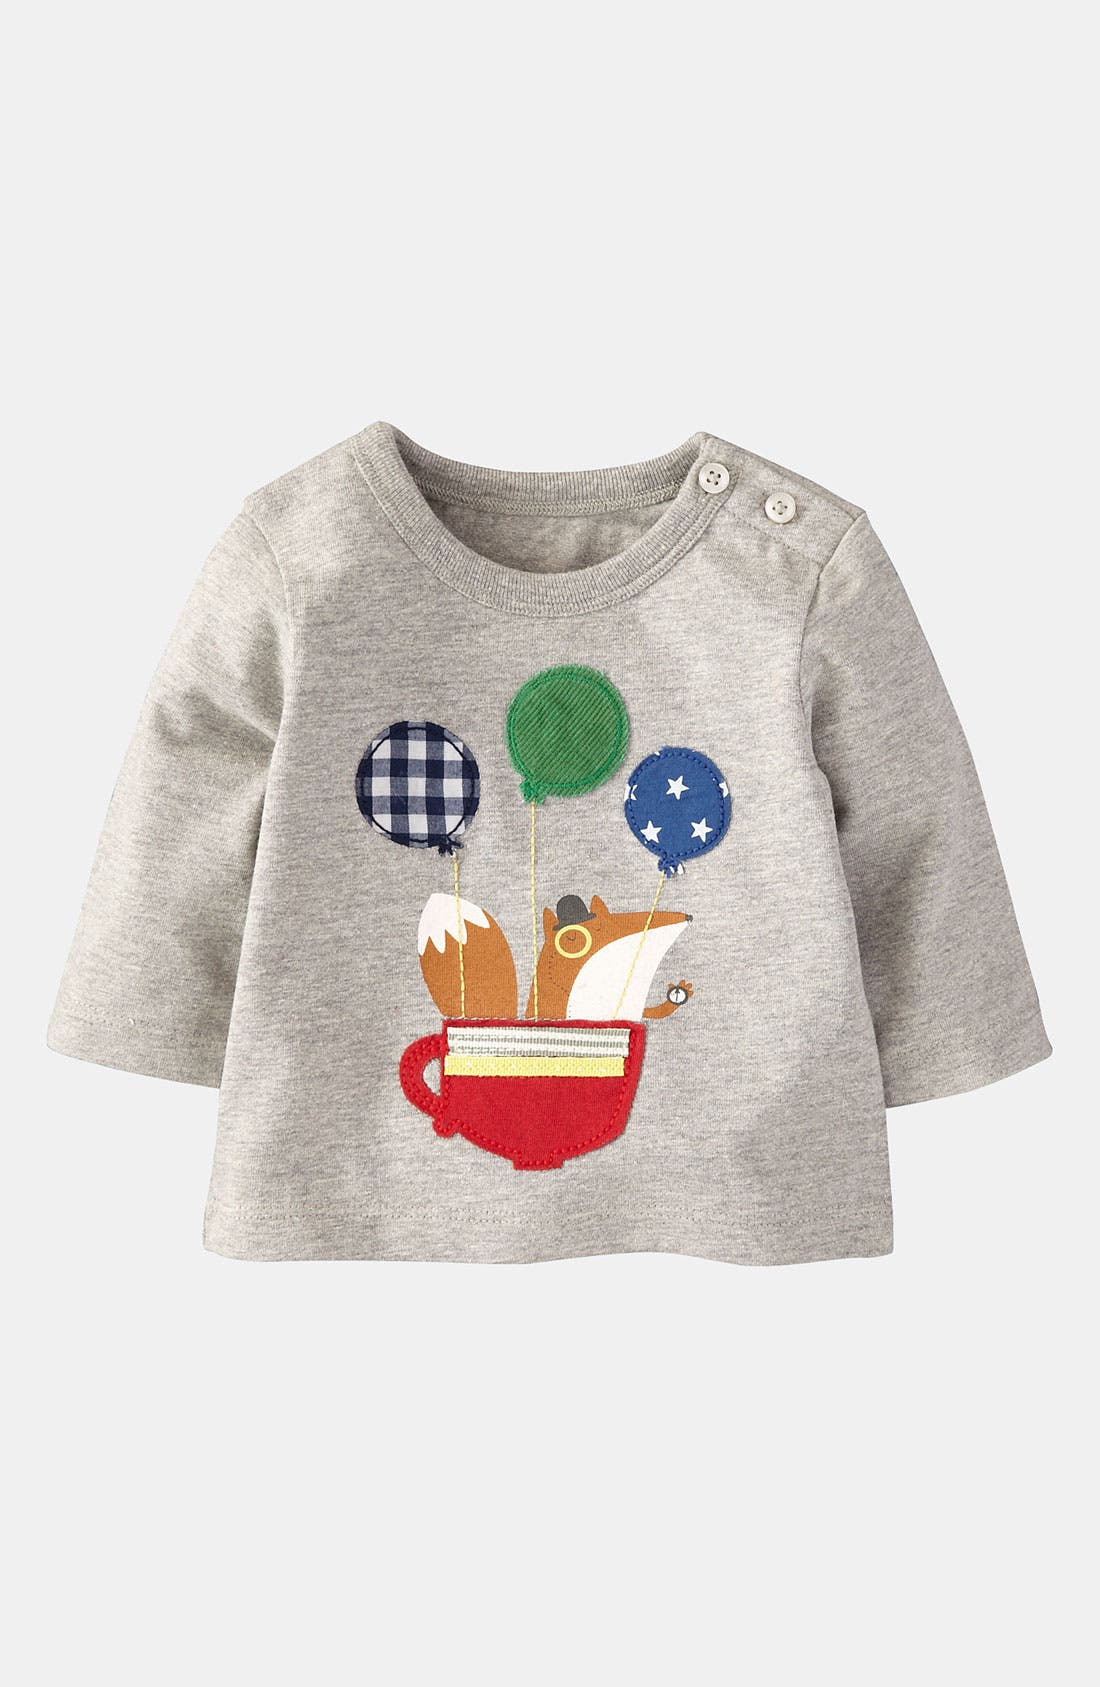 Alternate Image 1 Selected - Mini Boden 'Animal Adventures' T-Shirt (Infant)